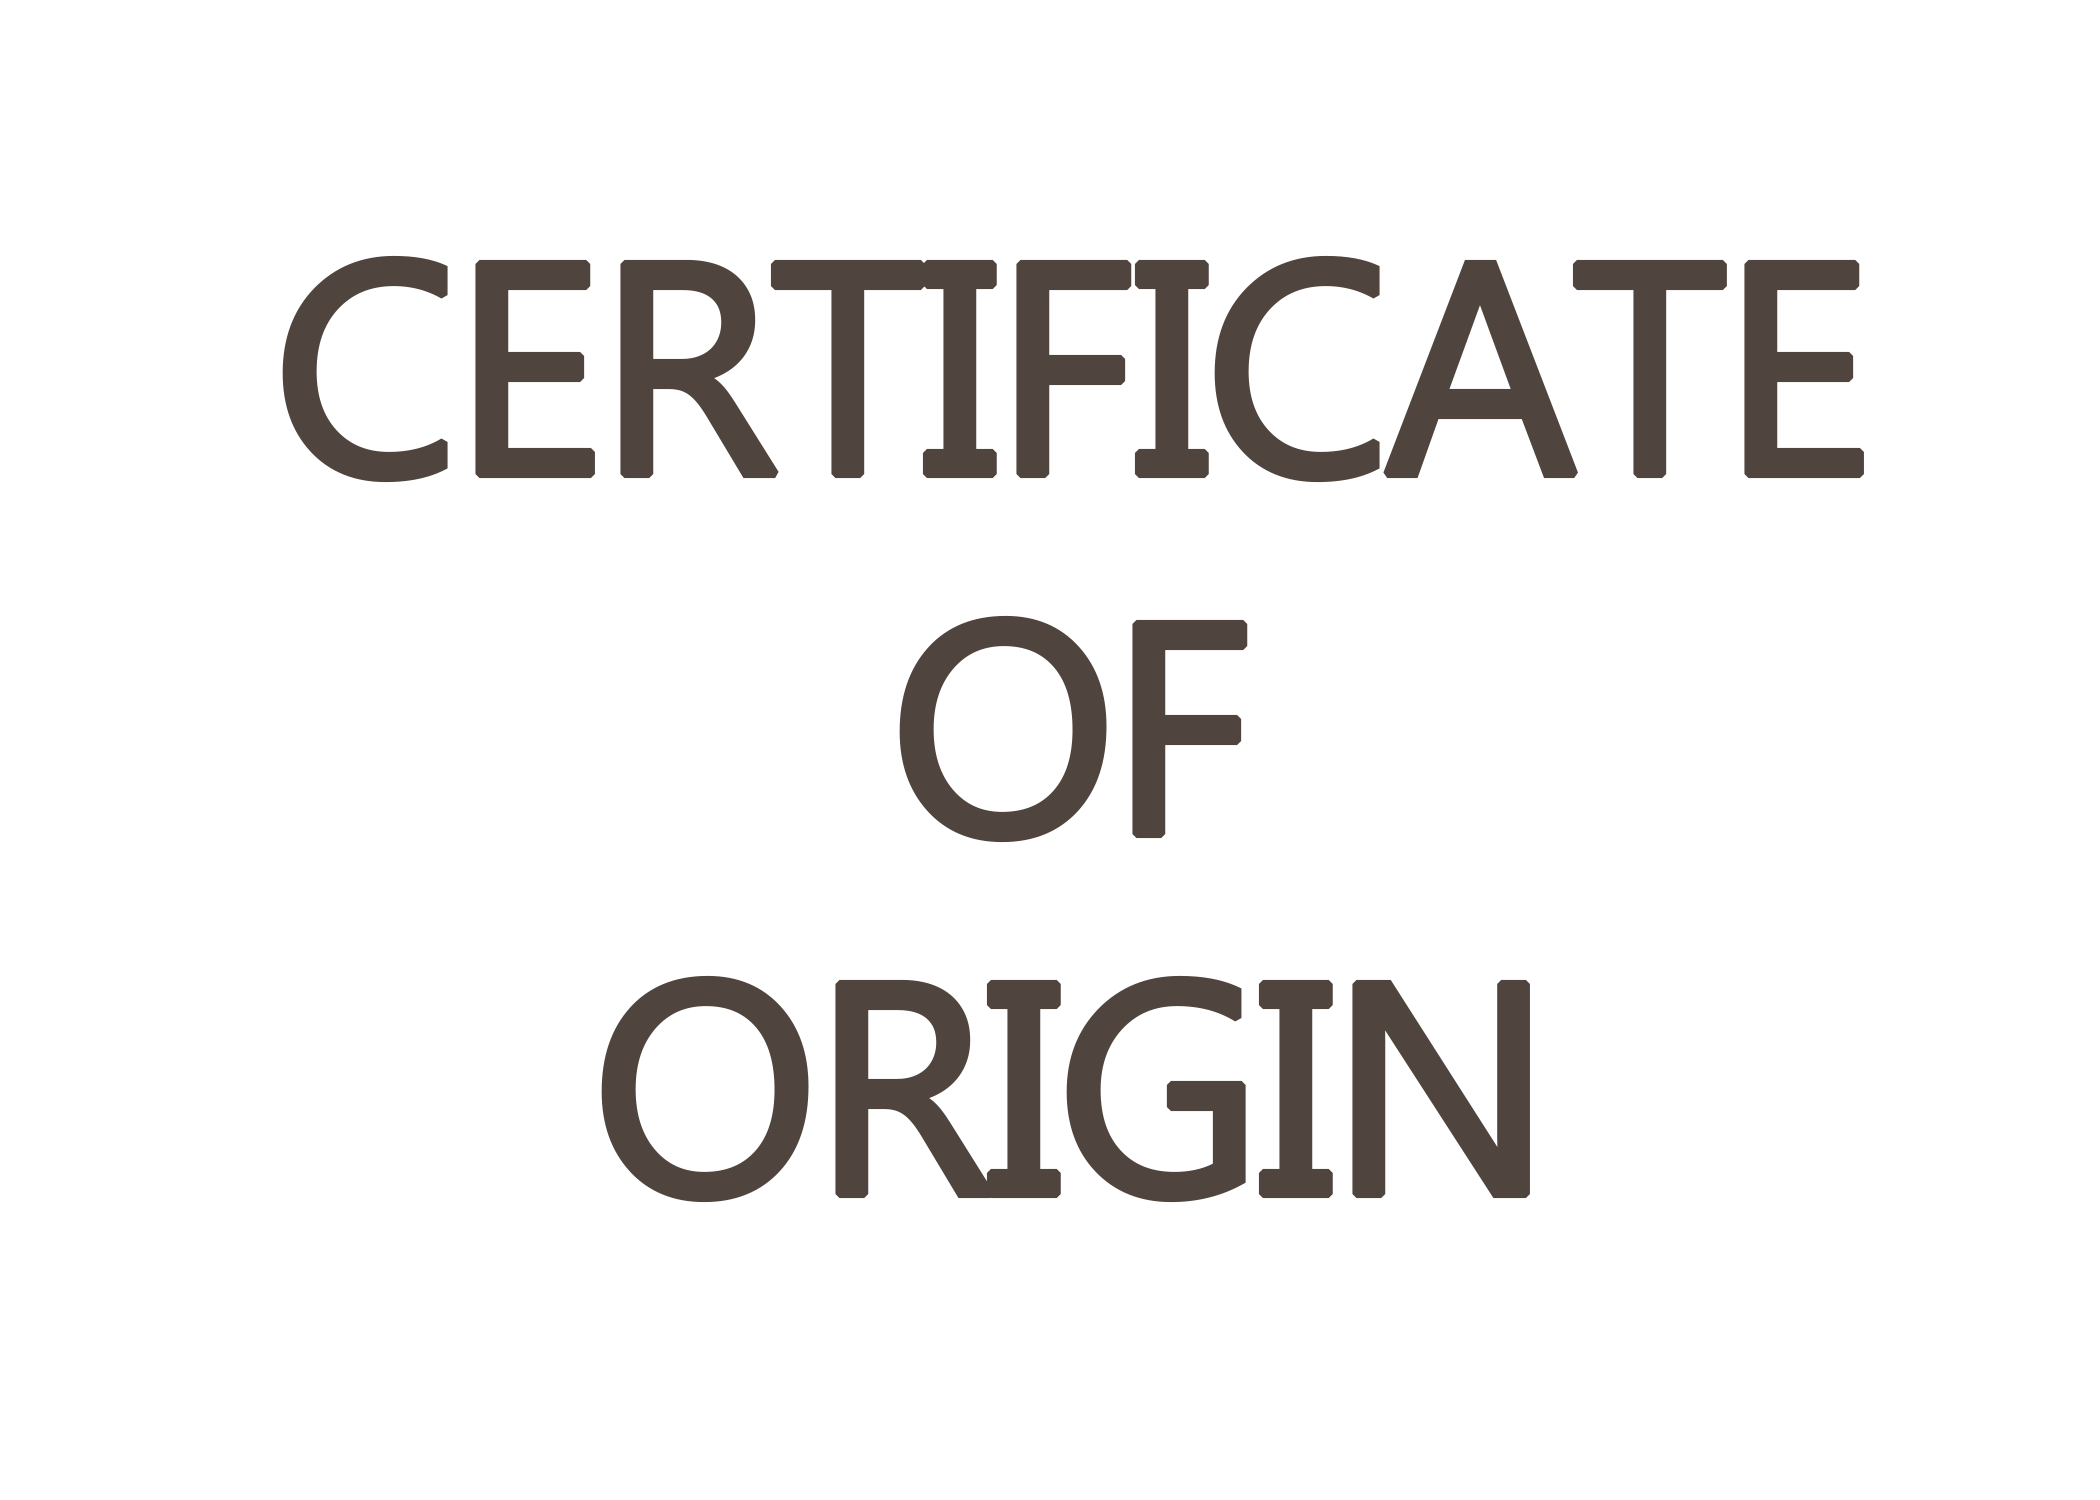 CERTIFICTE OF ORIGIN